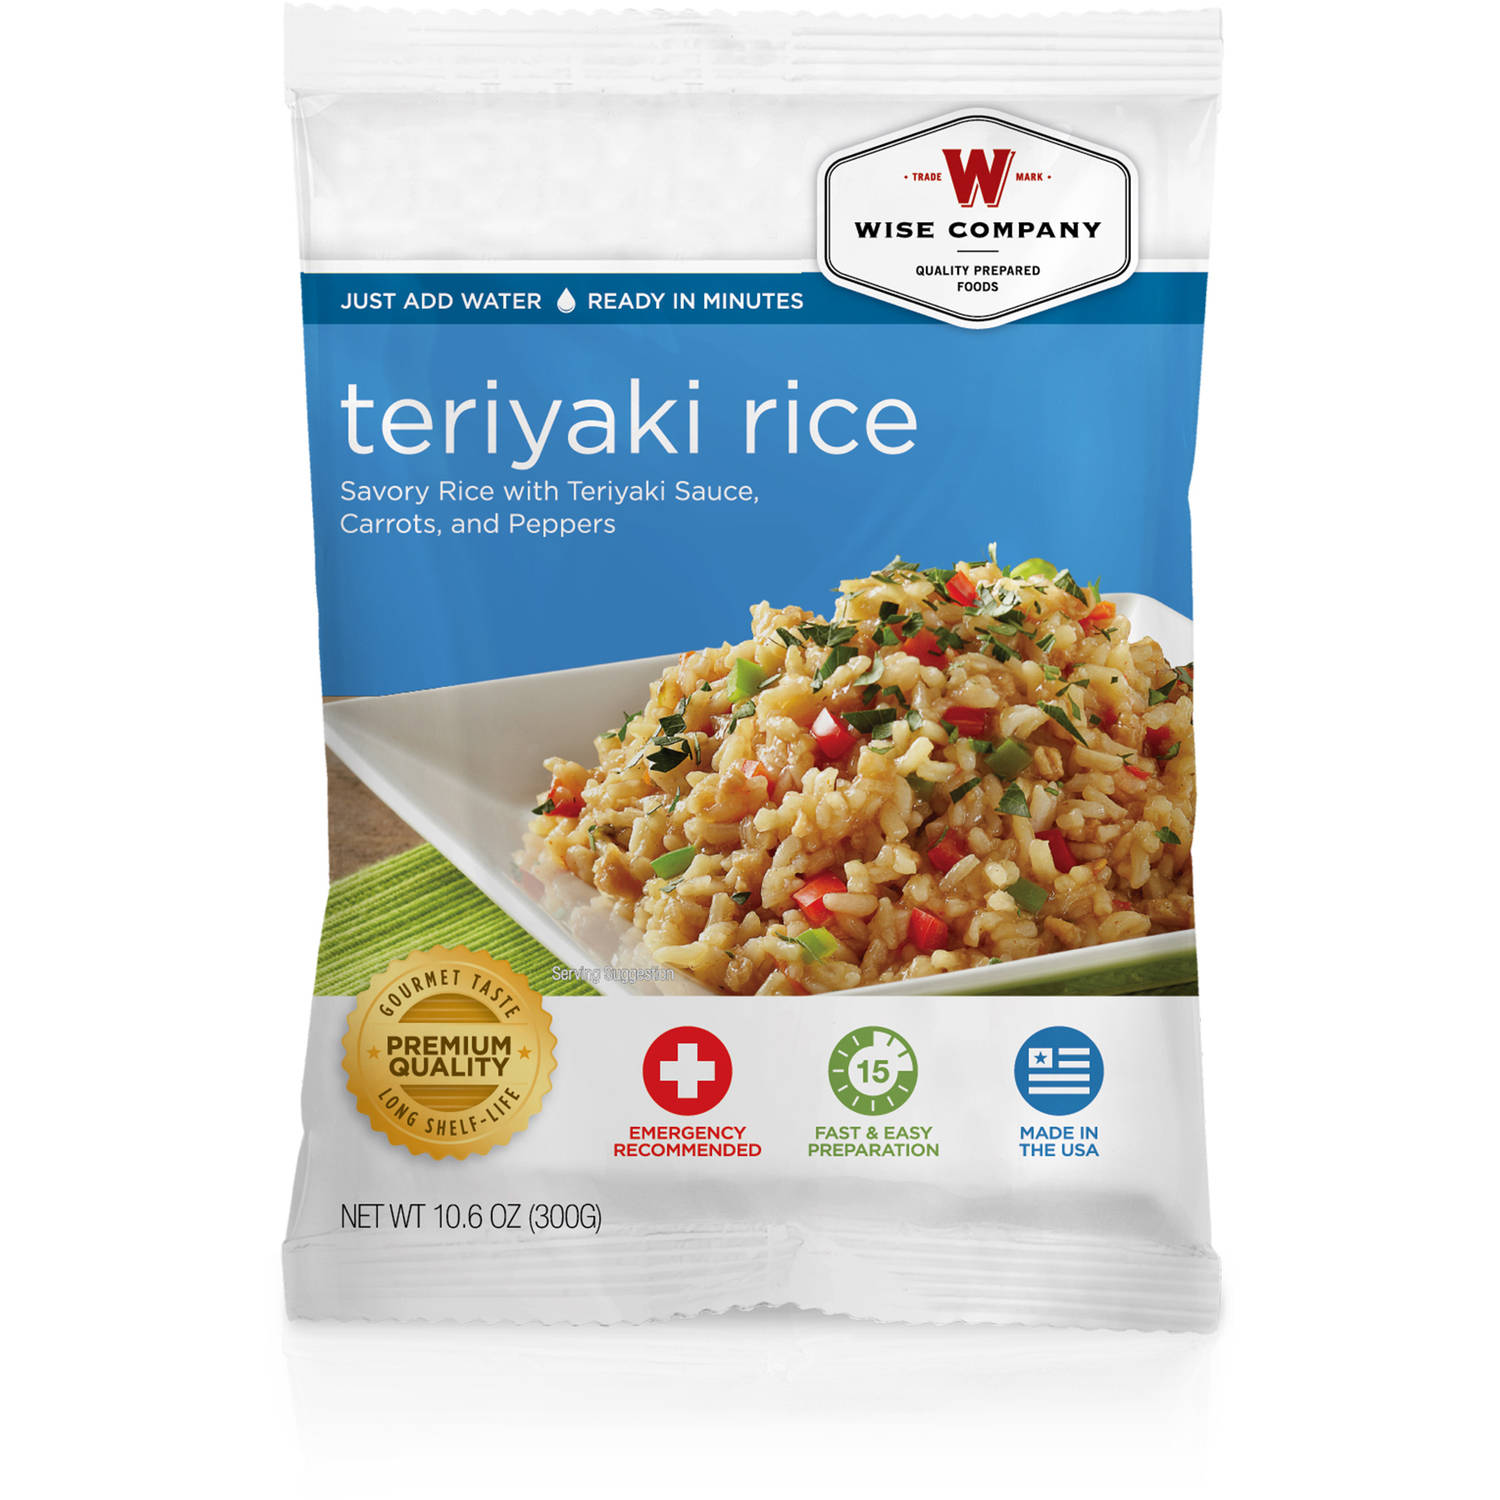 Wise Company Teriyaki Rice, 10.6 oz